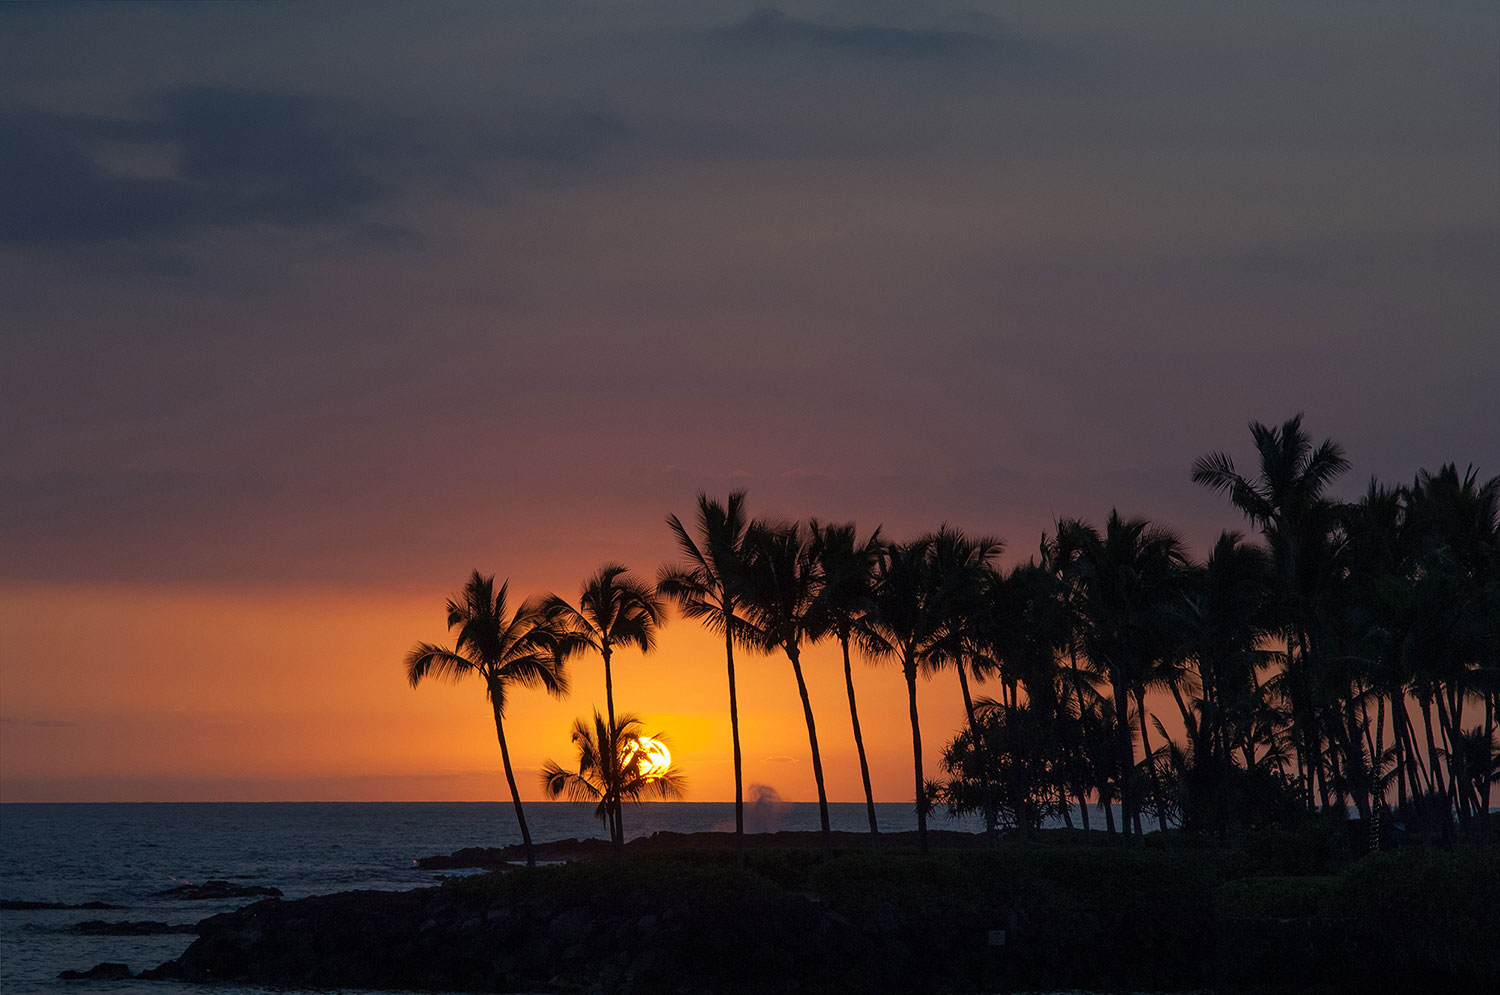 Hawaii - Sonnenuntergang